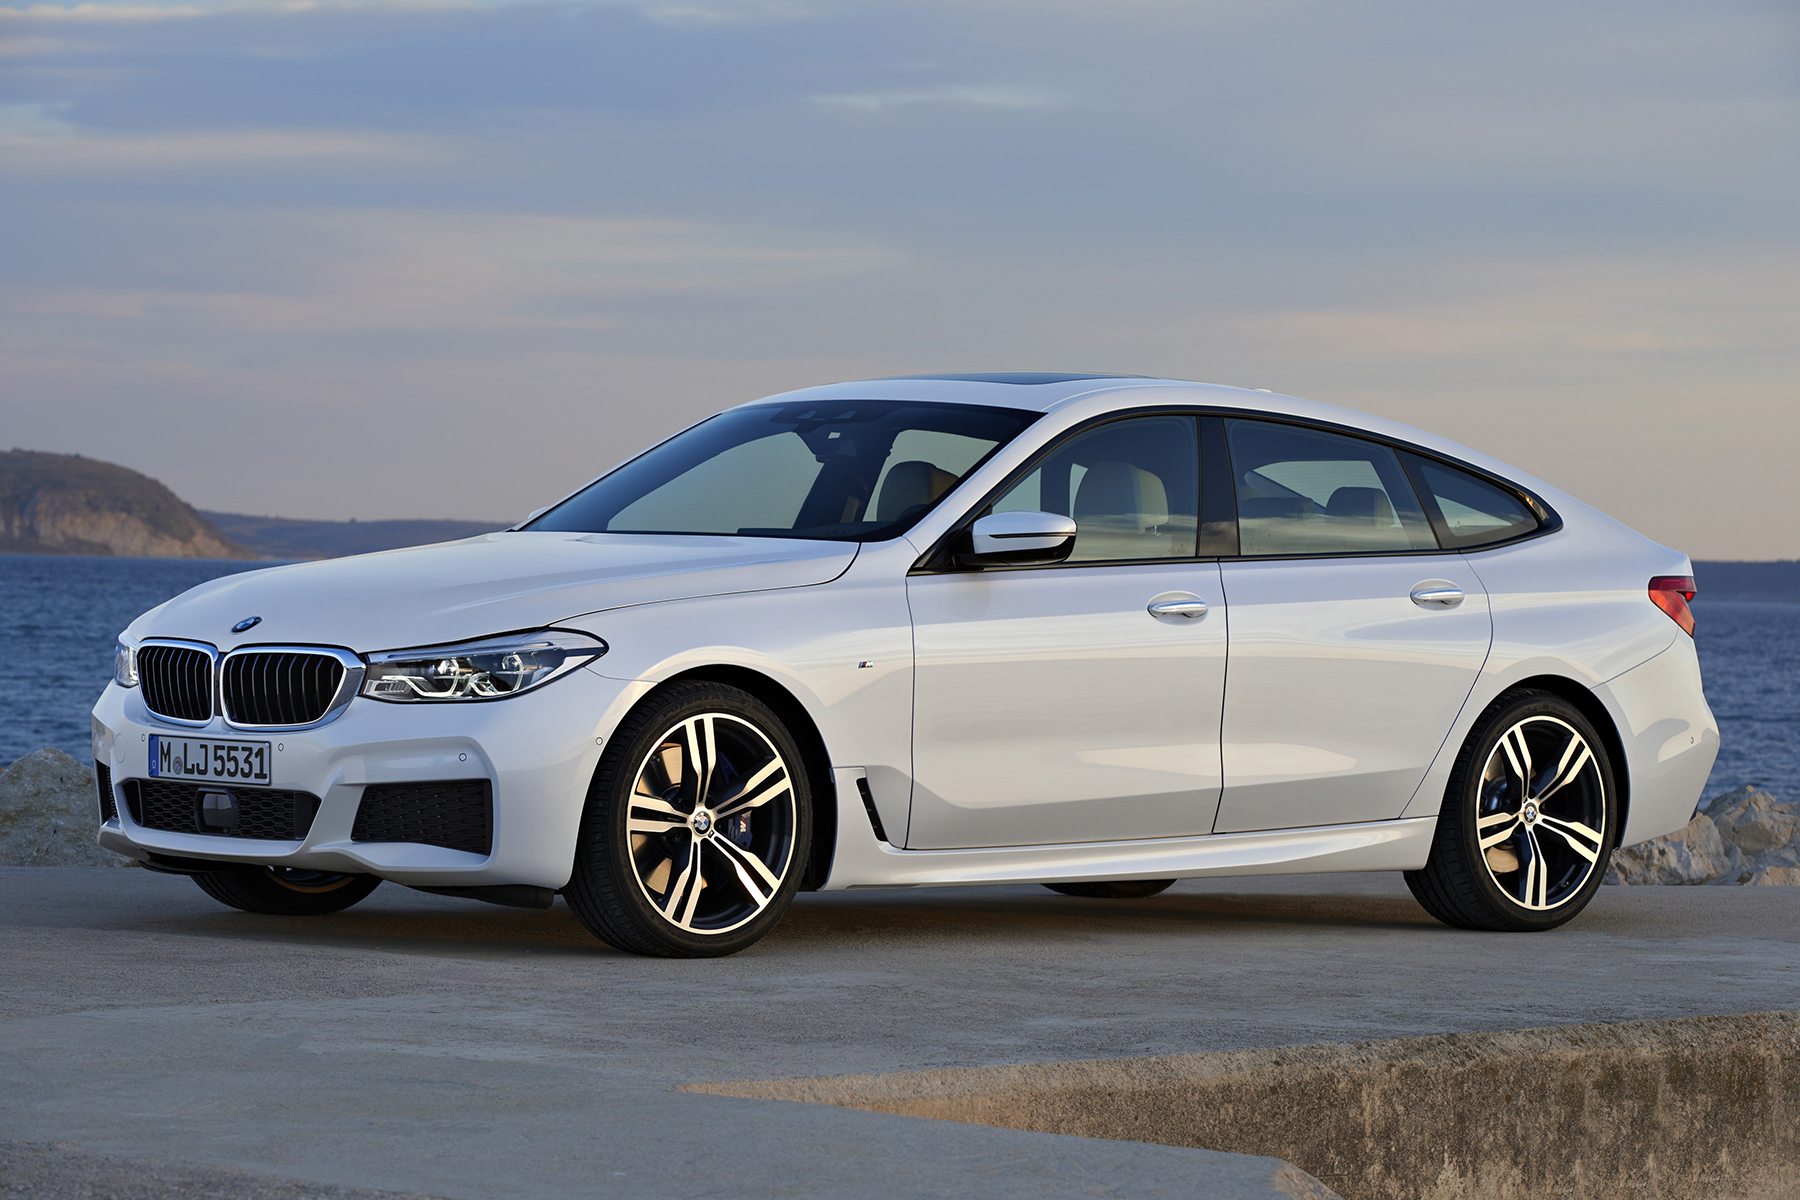 series cars auto bmw classifieds for edition sale special sport used coupe m limited